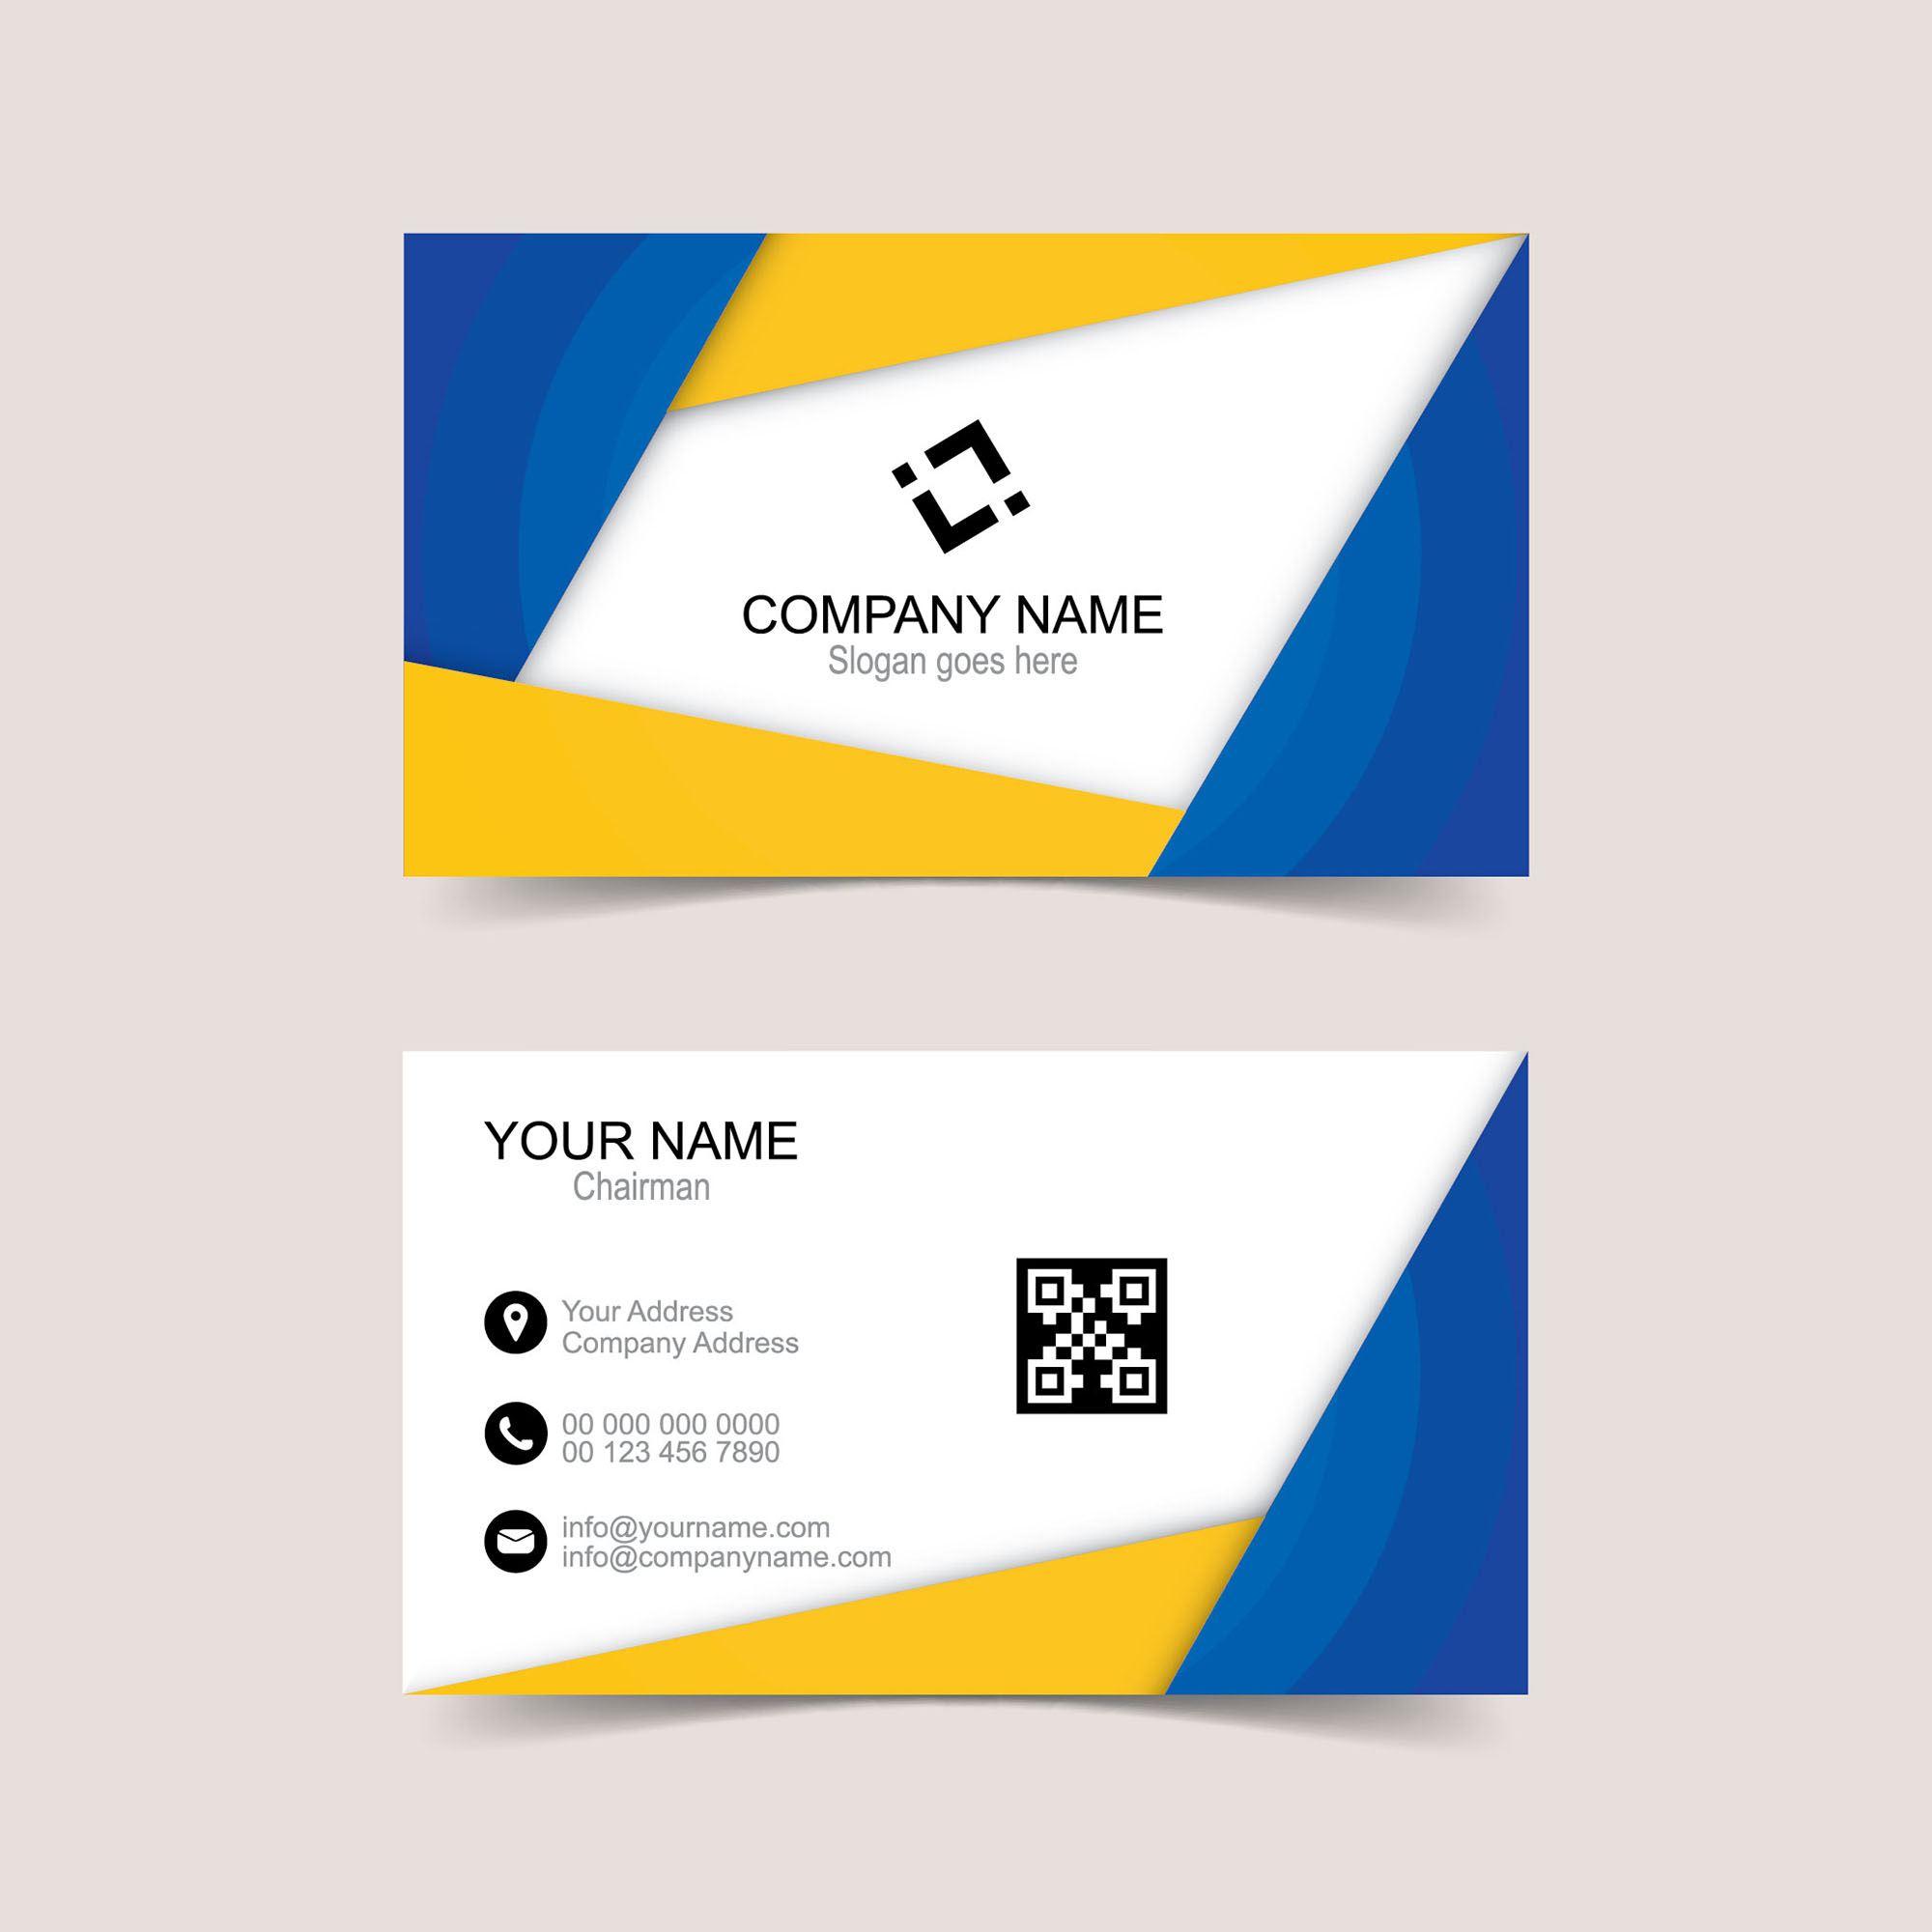 Vector Creative Business Card Template Free Download Wisxicom - Free business card layout template